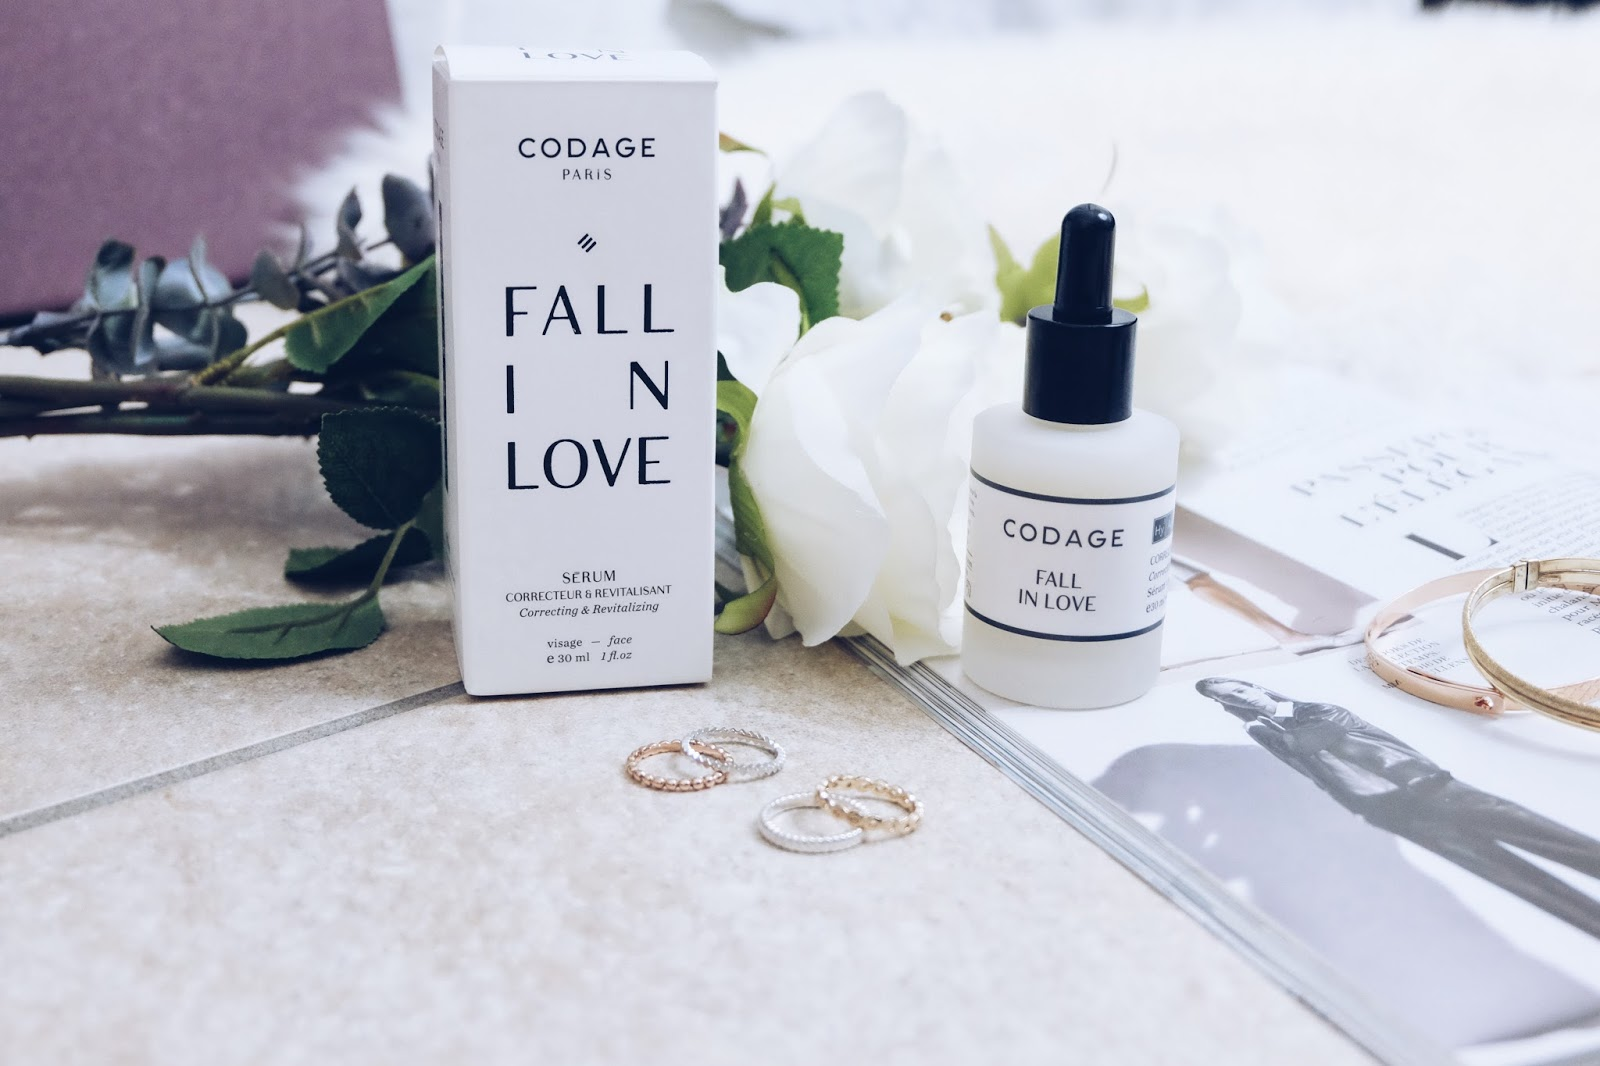 routine soin, soin automne, codage paris, fall in love codage paris